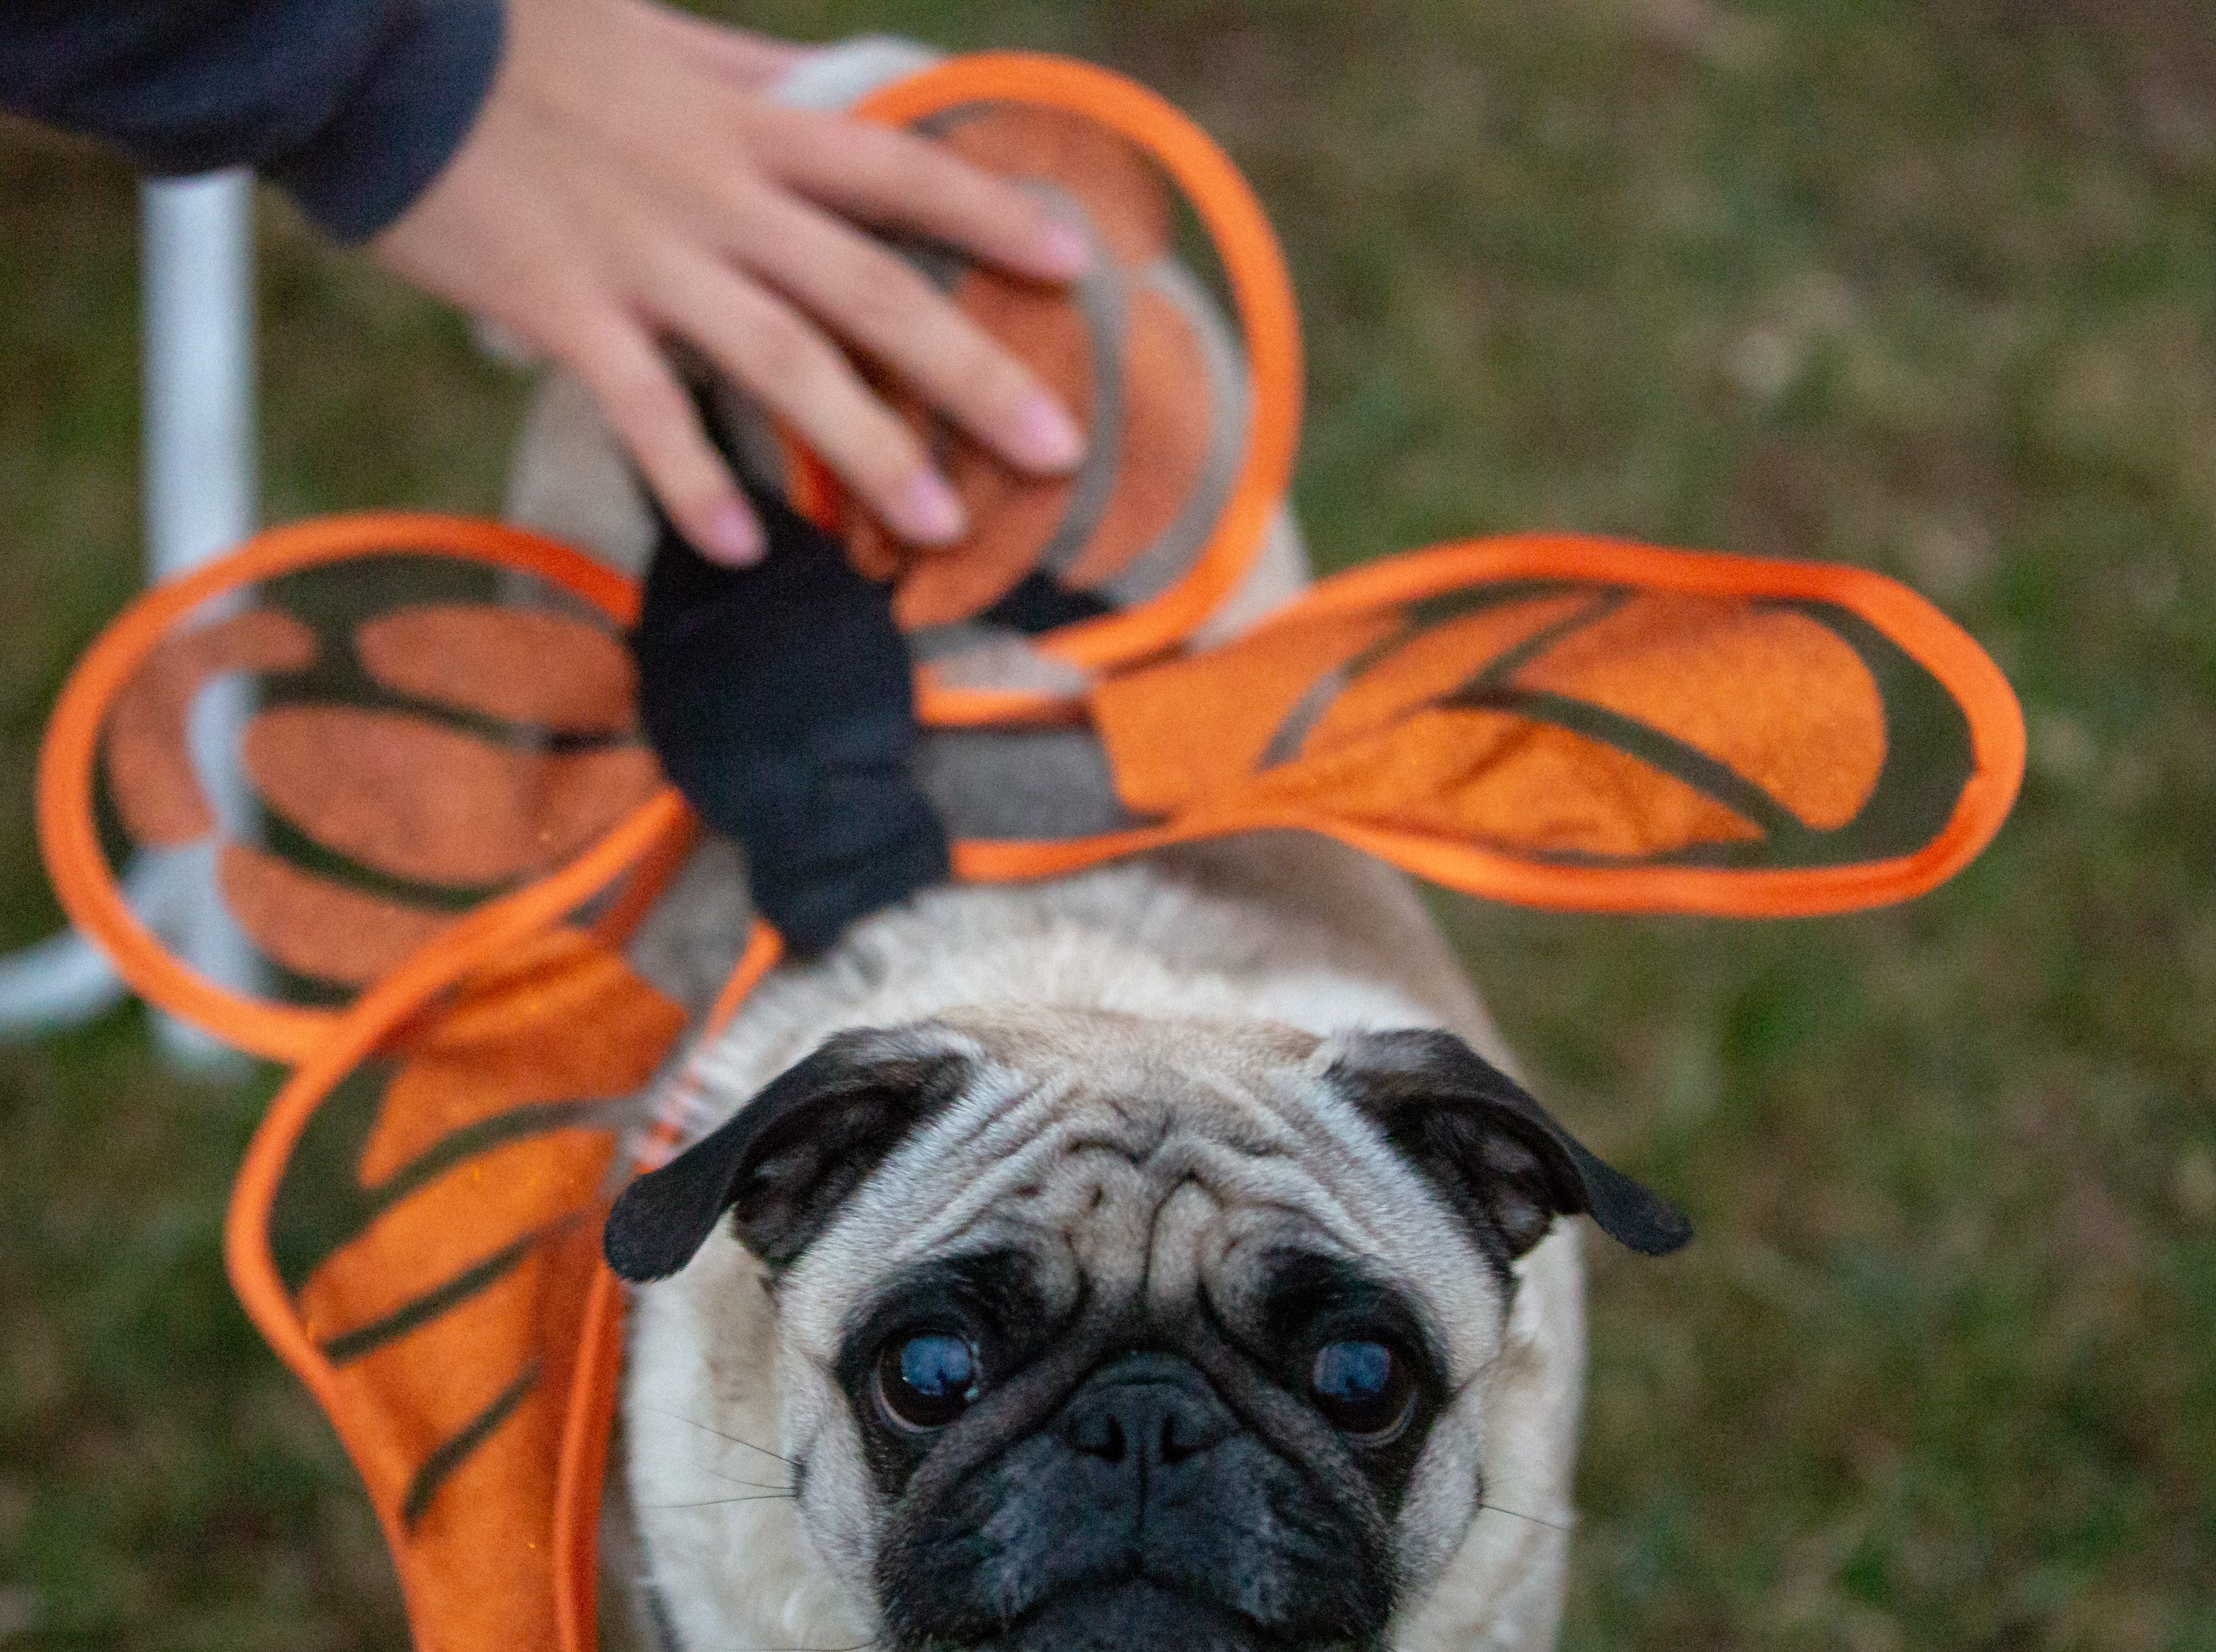 Dressed as a butterfly, Sophie, 4, looks up at the camera as her owner, Rosie Lunn Ramirez, adjusts the costume at the start of the Halloween costume contest for pets on Wednesday, Oct. 17, 2018, during the final Yappy Hour of the year at St. Clair Winery and Bistro.